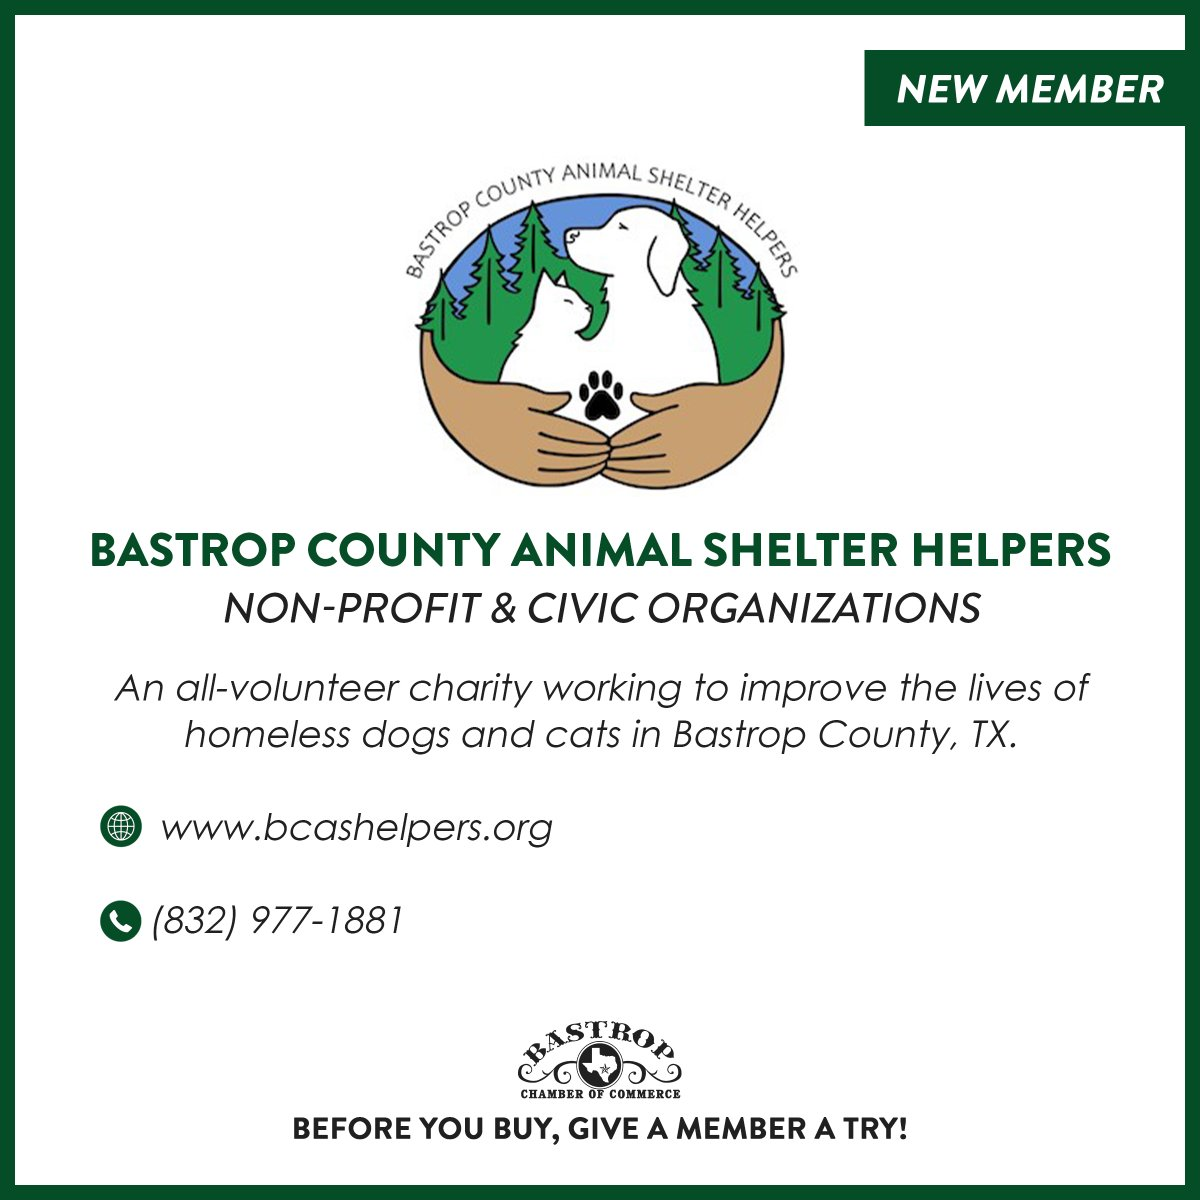 New member of the Bastrop Chamber of Commerce! Visit the website below to see how Bastrop County Animal Shelter Helpers are bringing the community together to better the lives of animals, in partnership with the Bastrop County Animal Shelter.